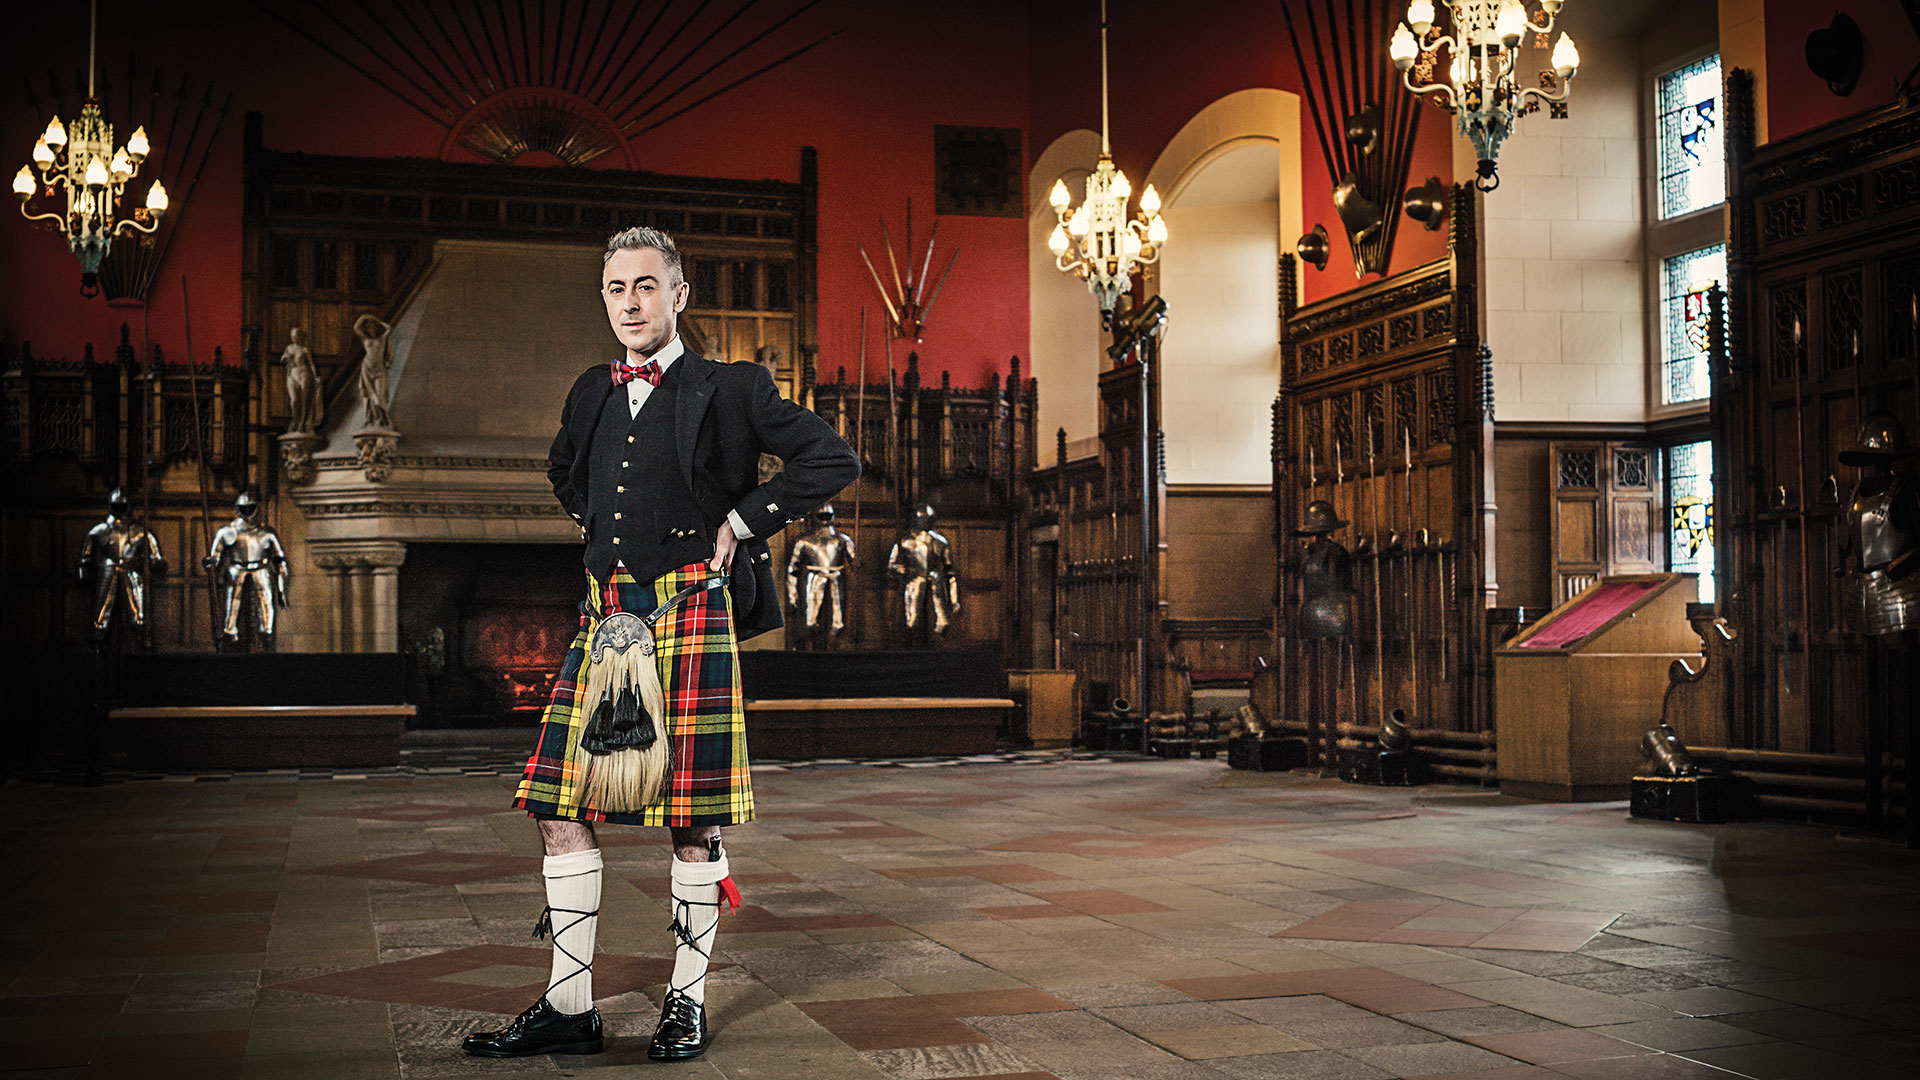 It's easy to have a bonny good time with this great Scot. Check out these cool photos of Alan Cumming in Edinburgh!